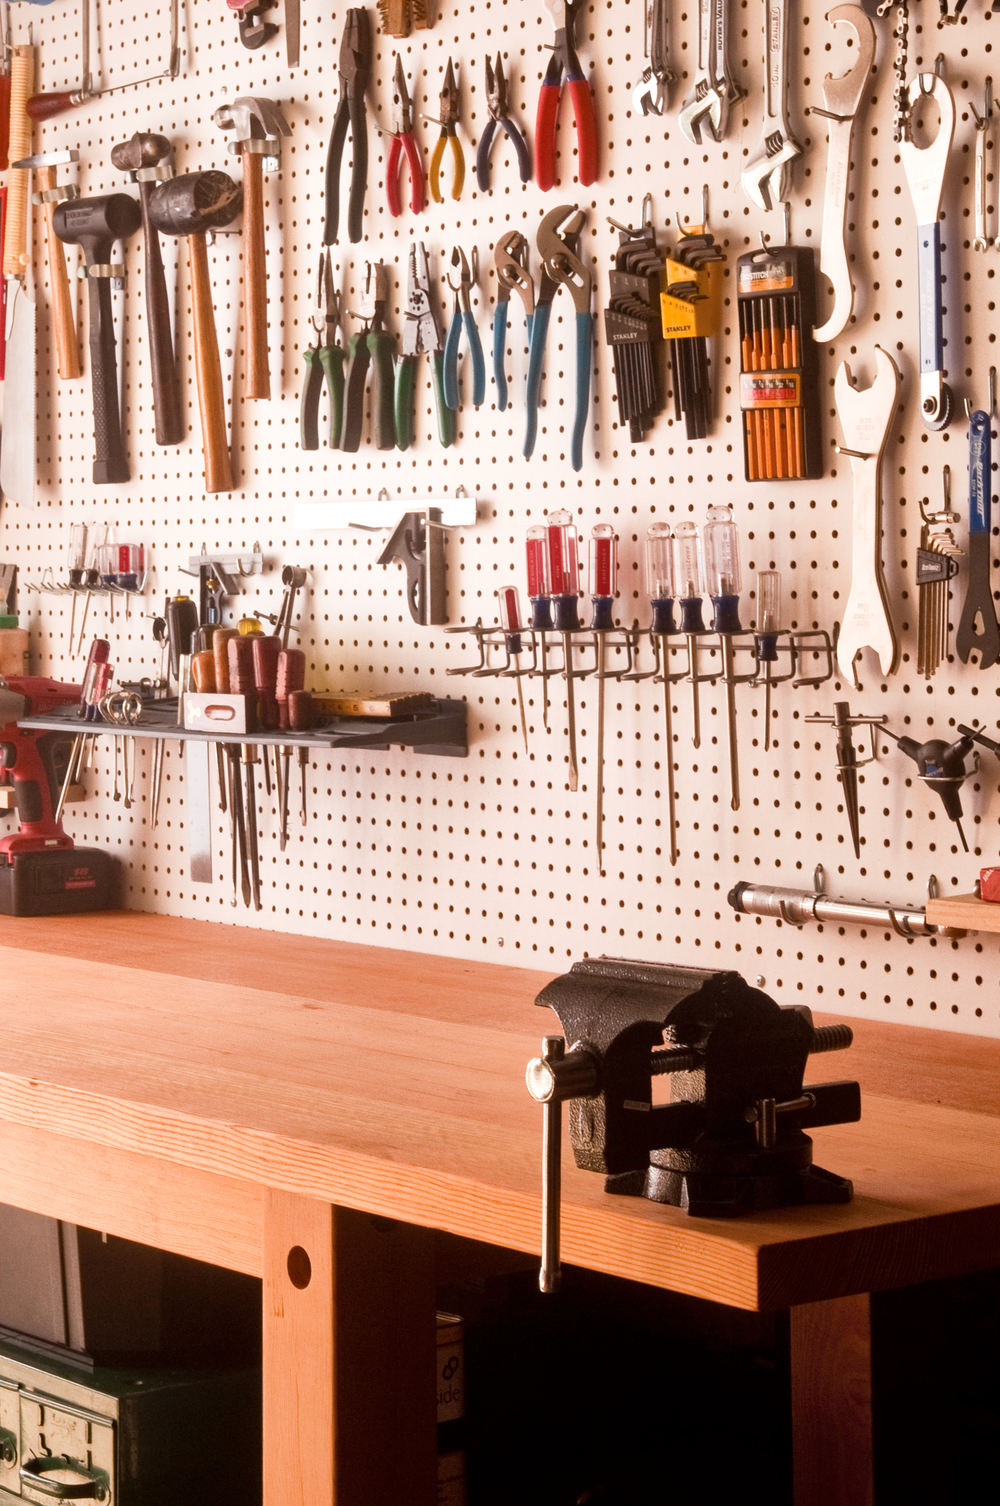 An easy to build workbench for your garage